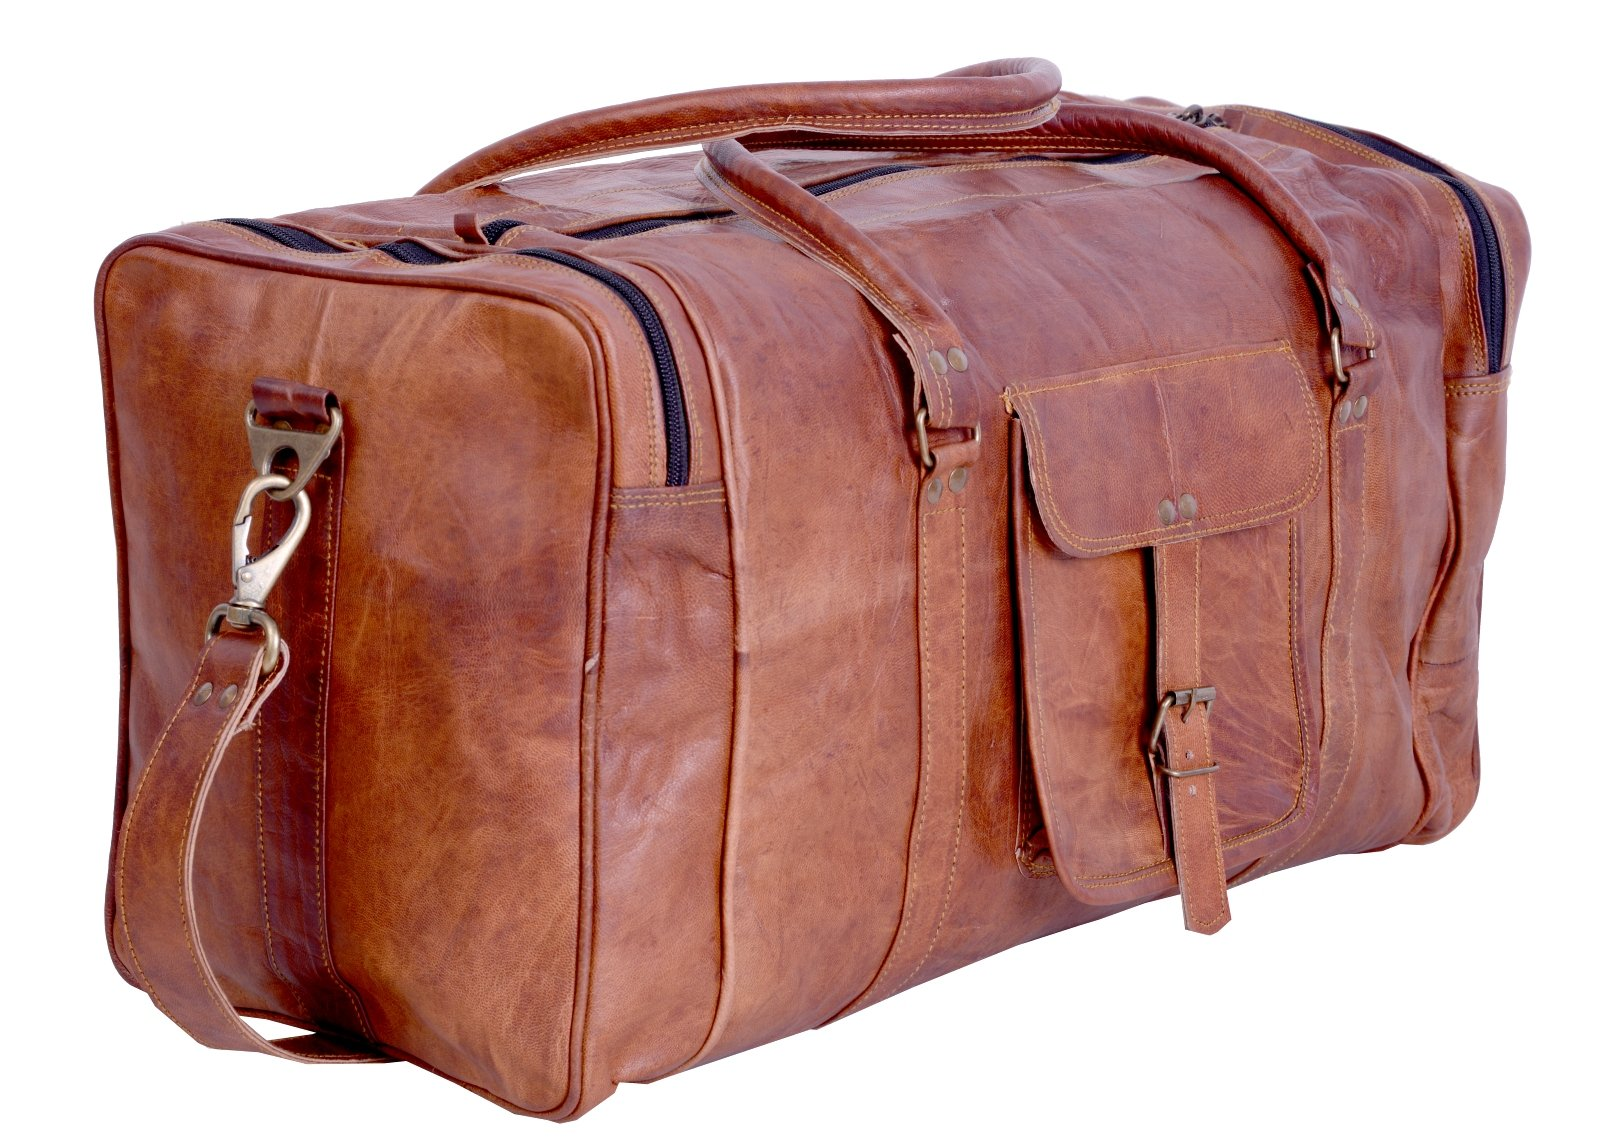 Amazon.com  KPL 21 Inch Vintage Leather Duffel Travel Gym Sports Overnight  Weekend Duffel Bag  Sports   Outdoors c110bd85863bc